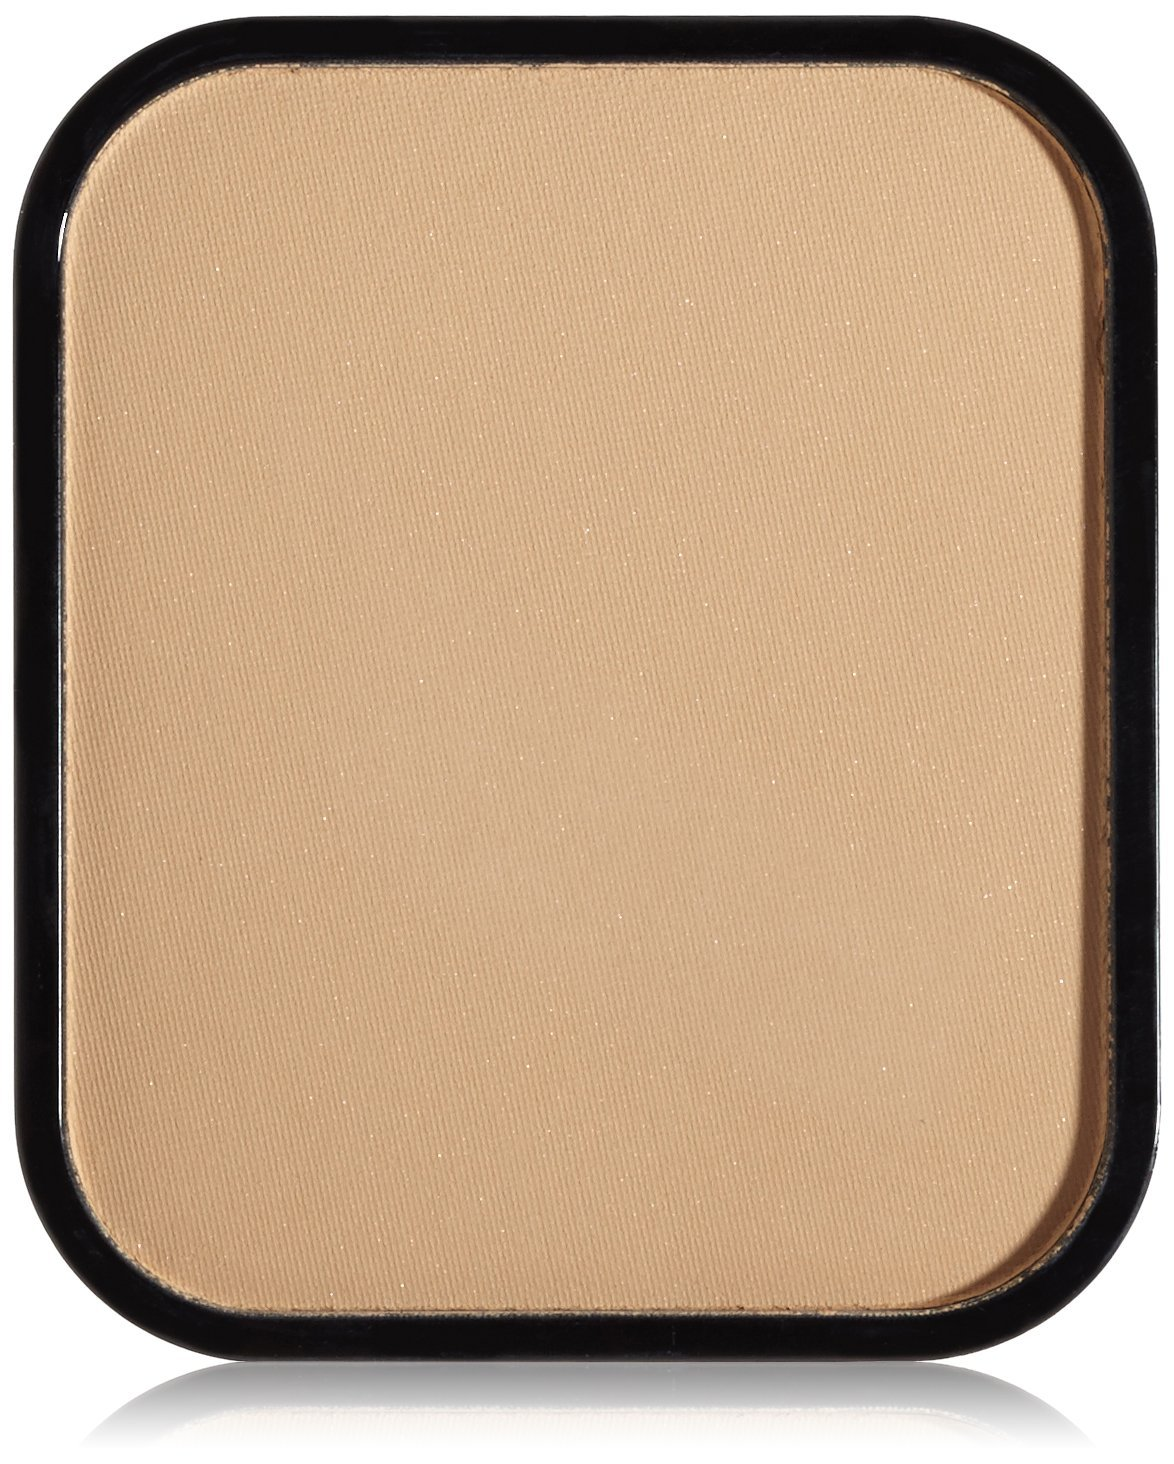 Get Quotations · Shiseido SPF 16 Perfect Smoothing Compact Foundation Refill, Natural Light Ivory, 0.35 Ounce